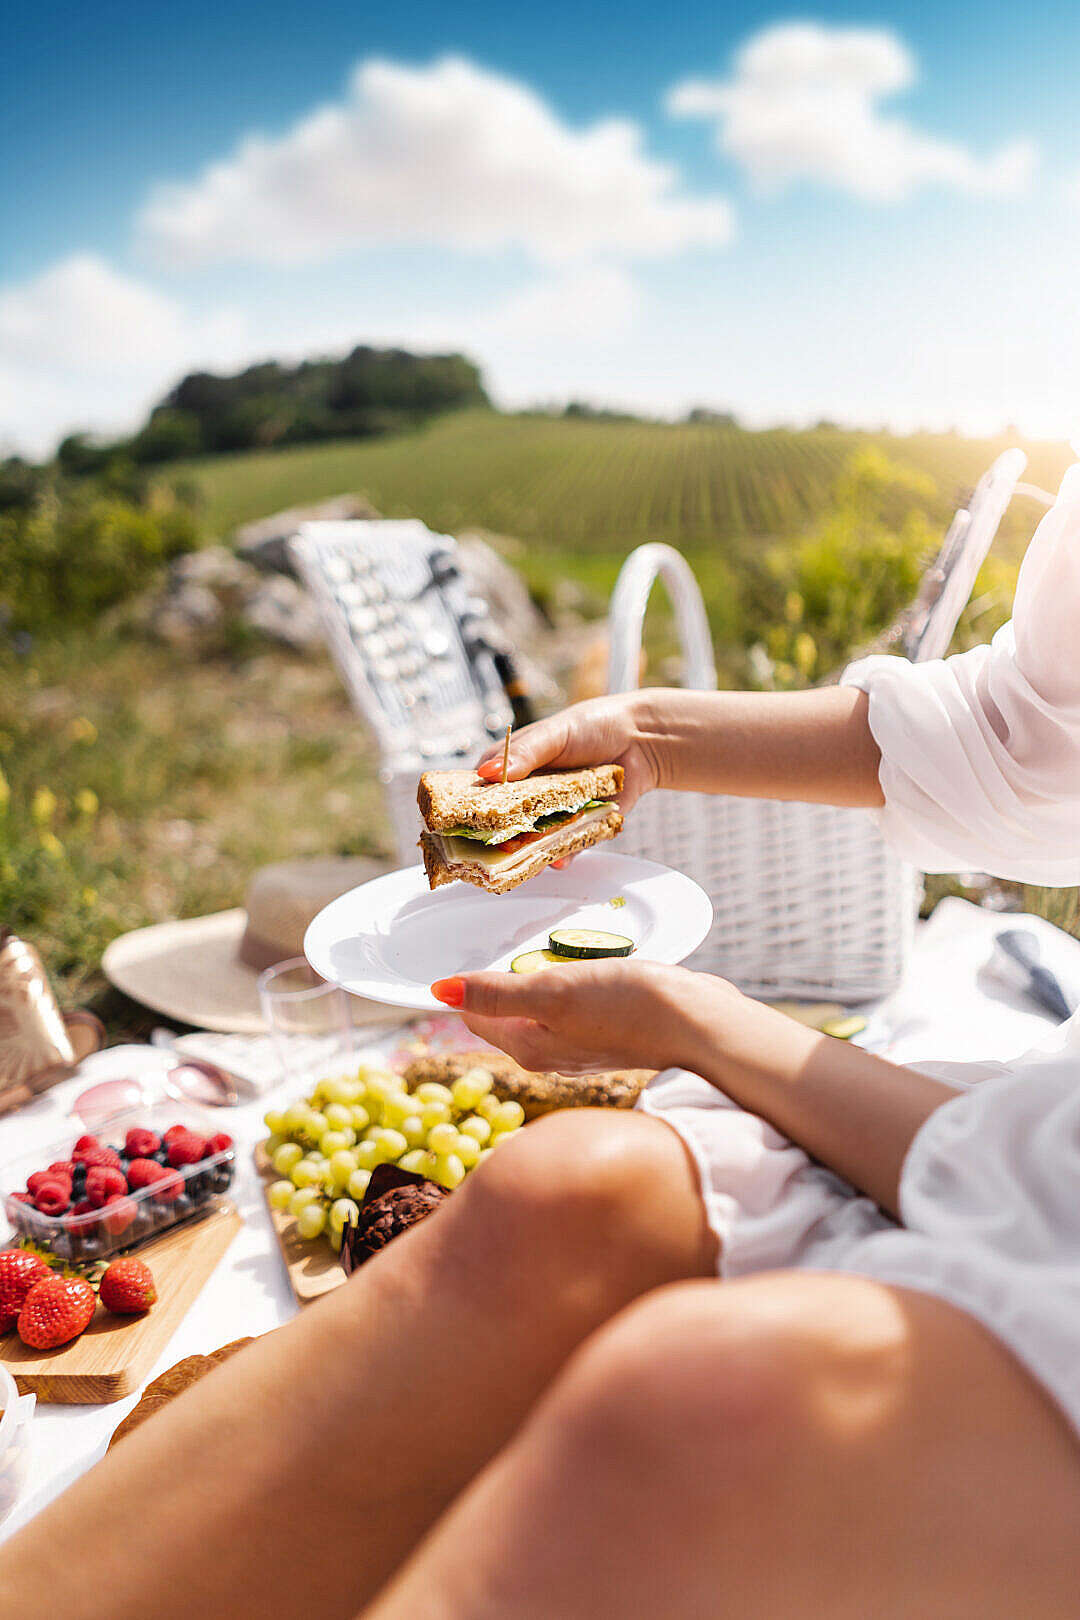 Download Eating a Sandwich on a Picnic Date FREE Stock Photo